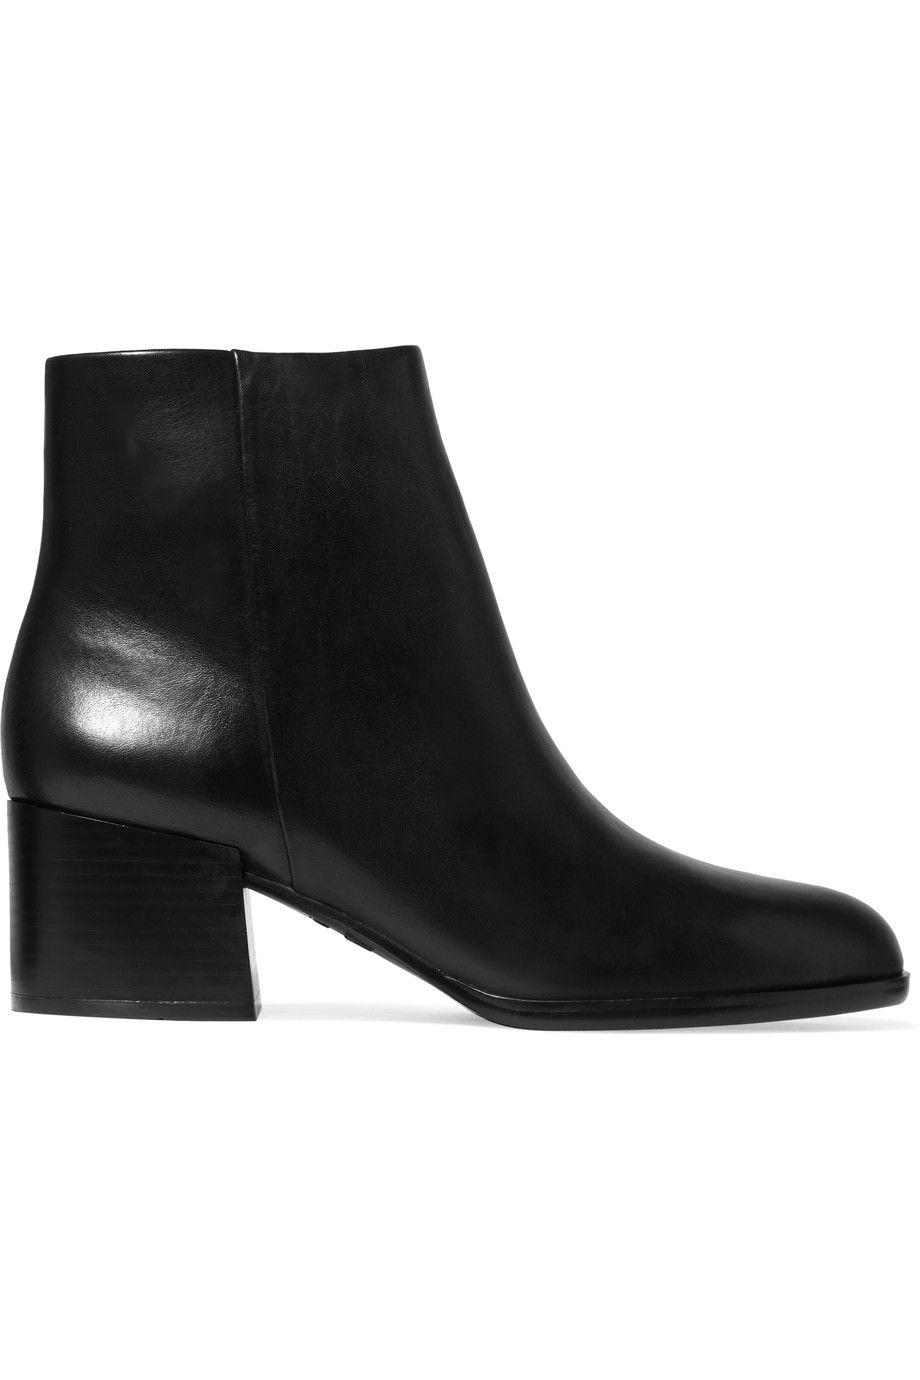 27c4caa9c30cef SAM EDELMAN Joey leather ankle boots.  samedelman  shoes  boots ...